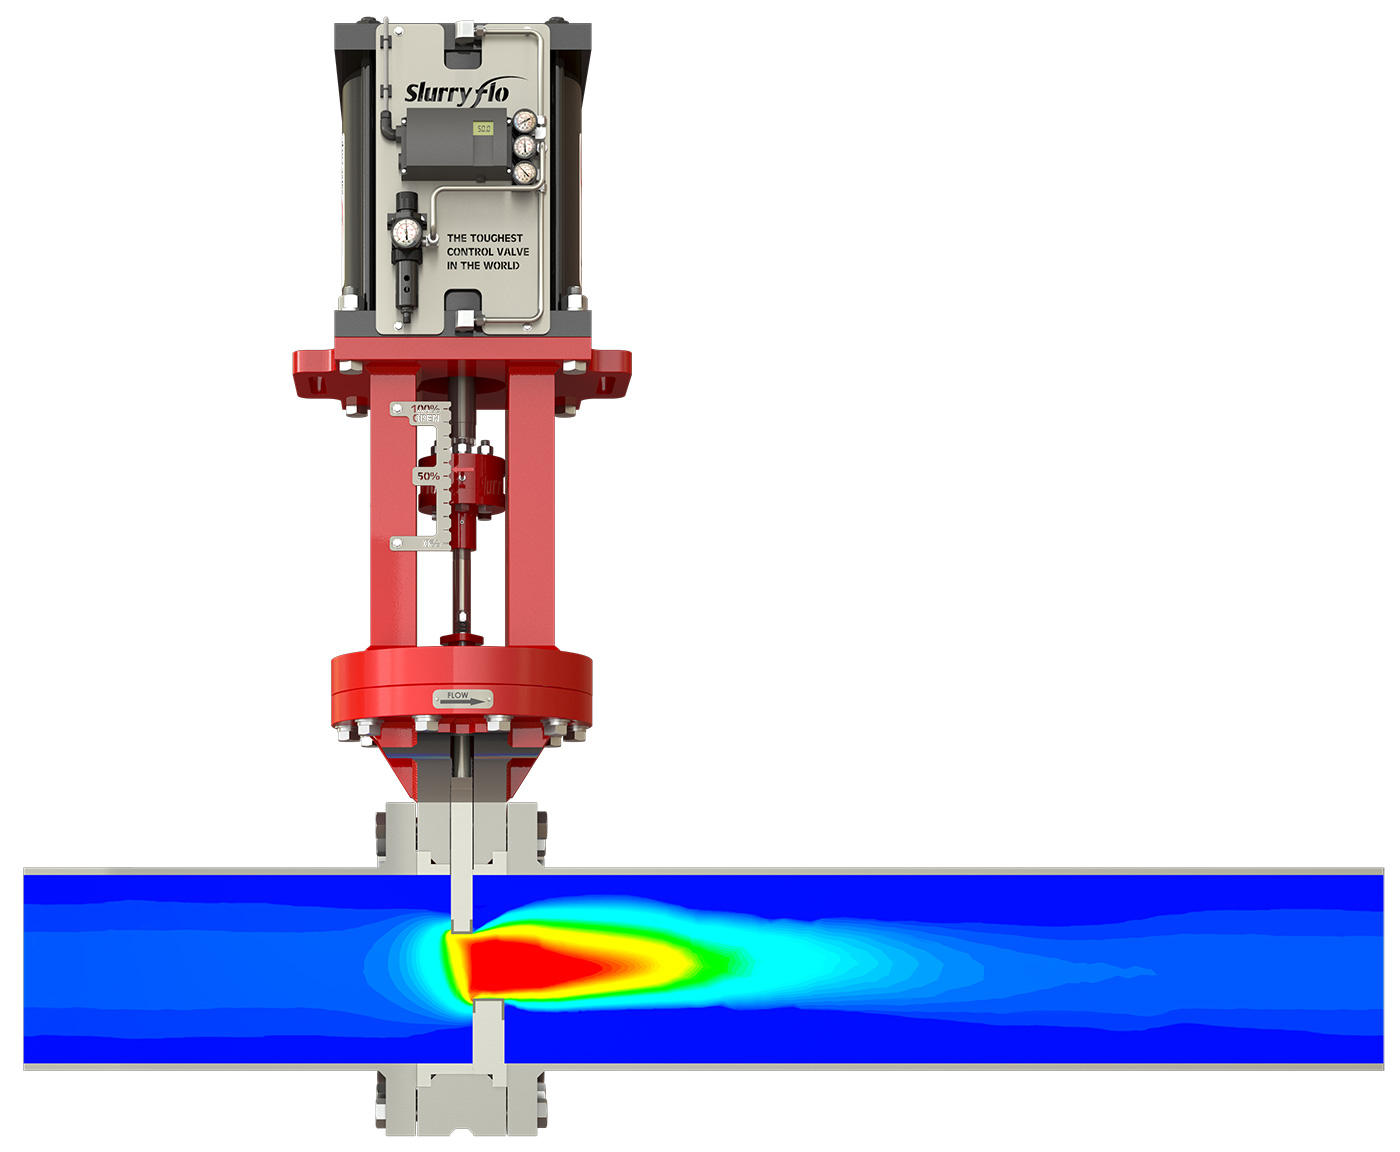 SlurryFlo Control Valves centralize flow which protects the valve body and downstream piping.